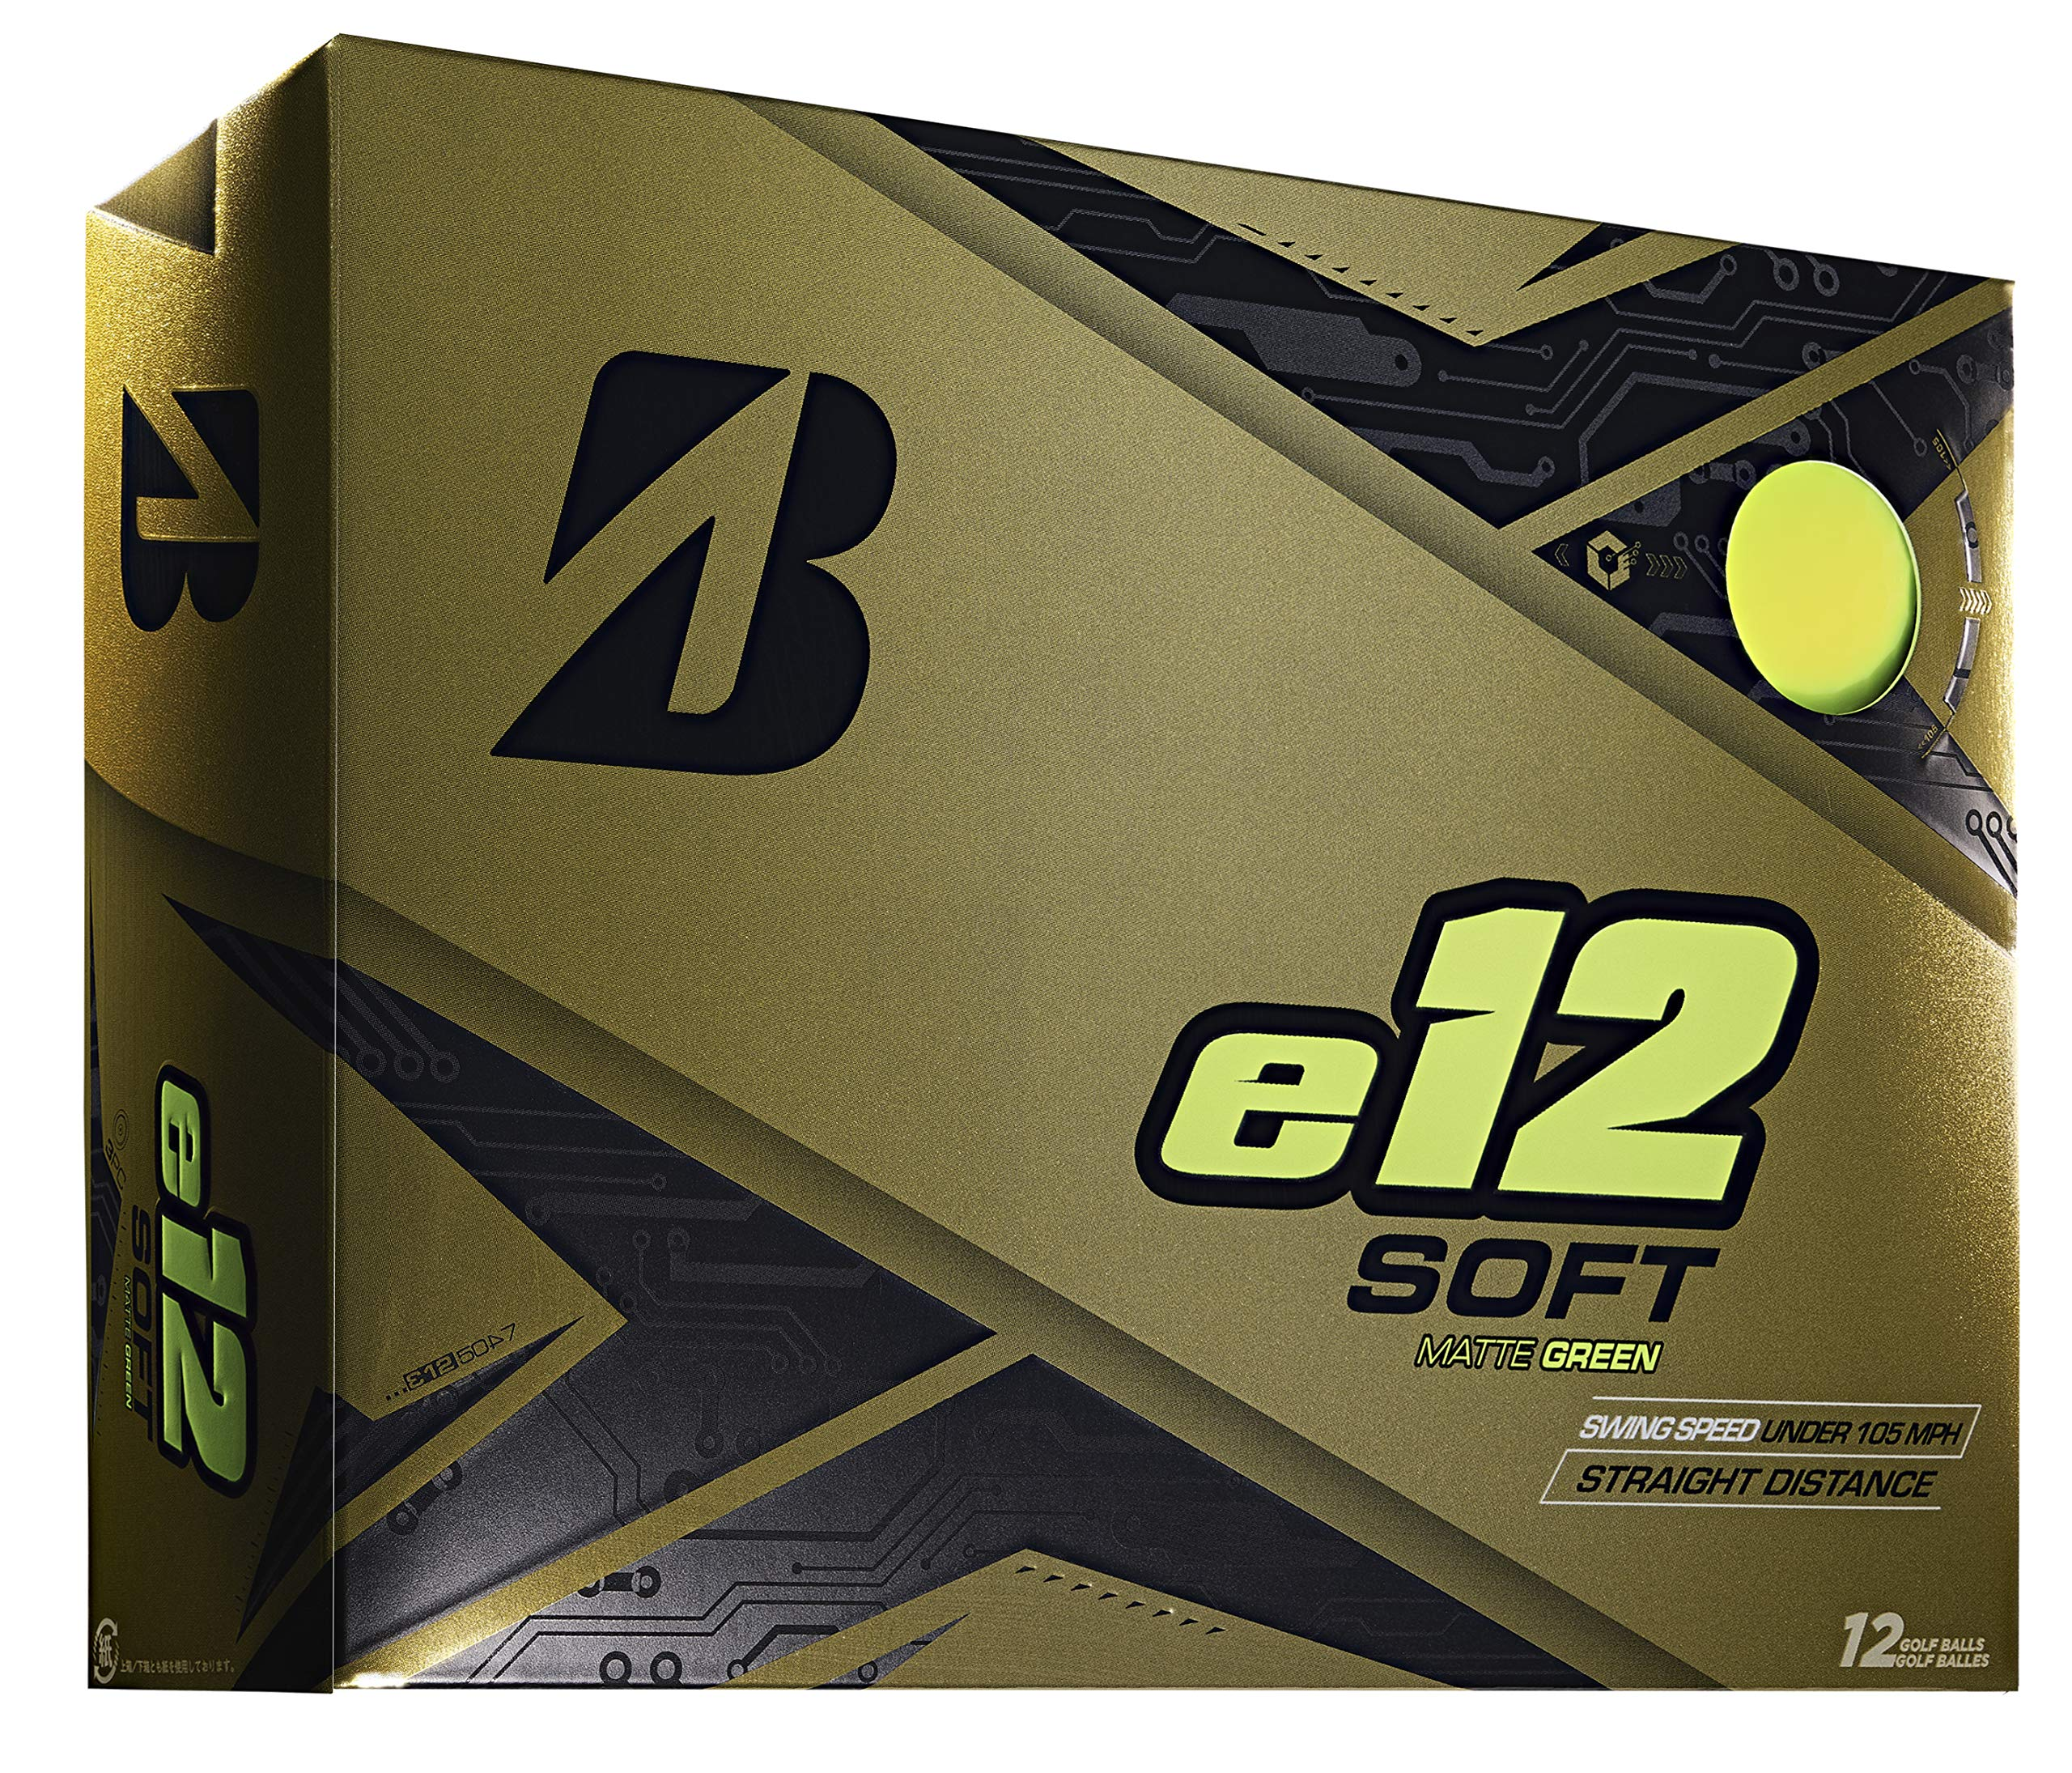 Bridgestone Golf e12 Soft Golf Balls, Matte Green (One Dozen)